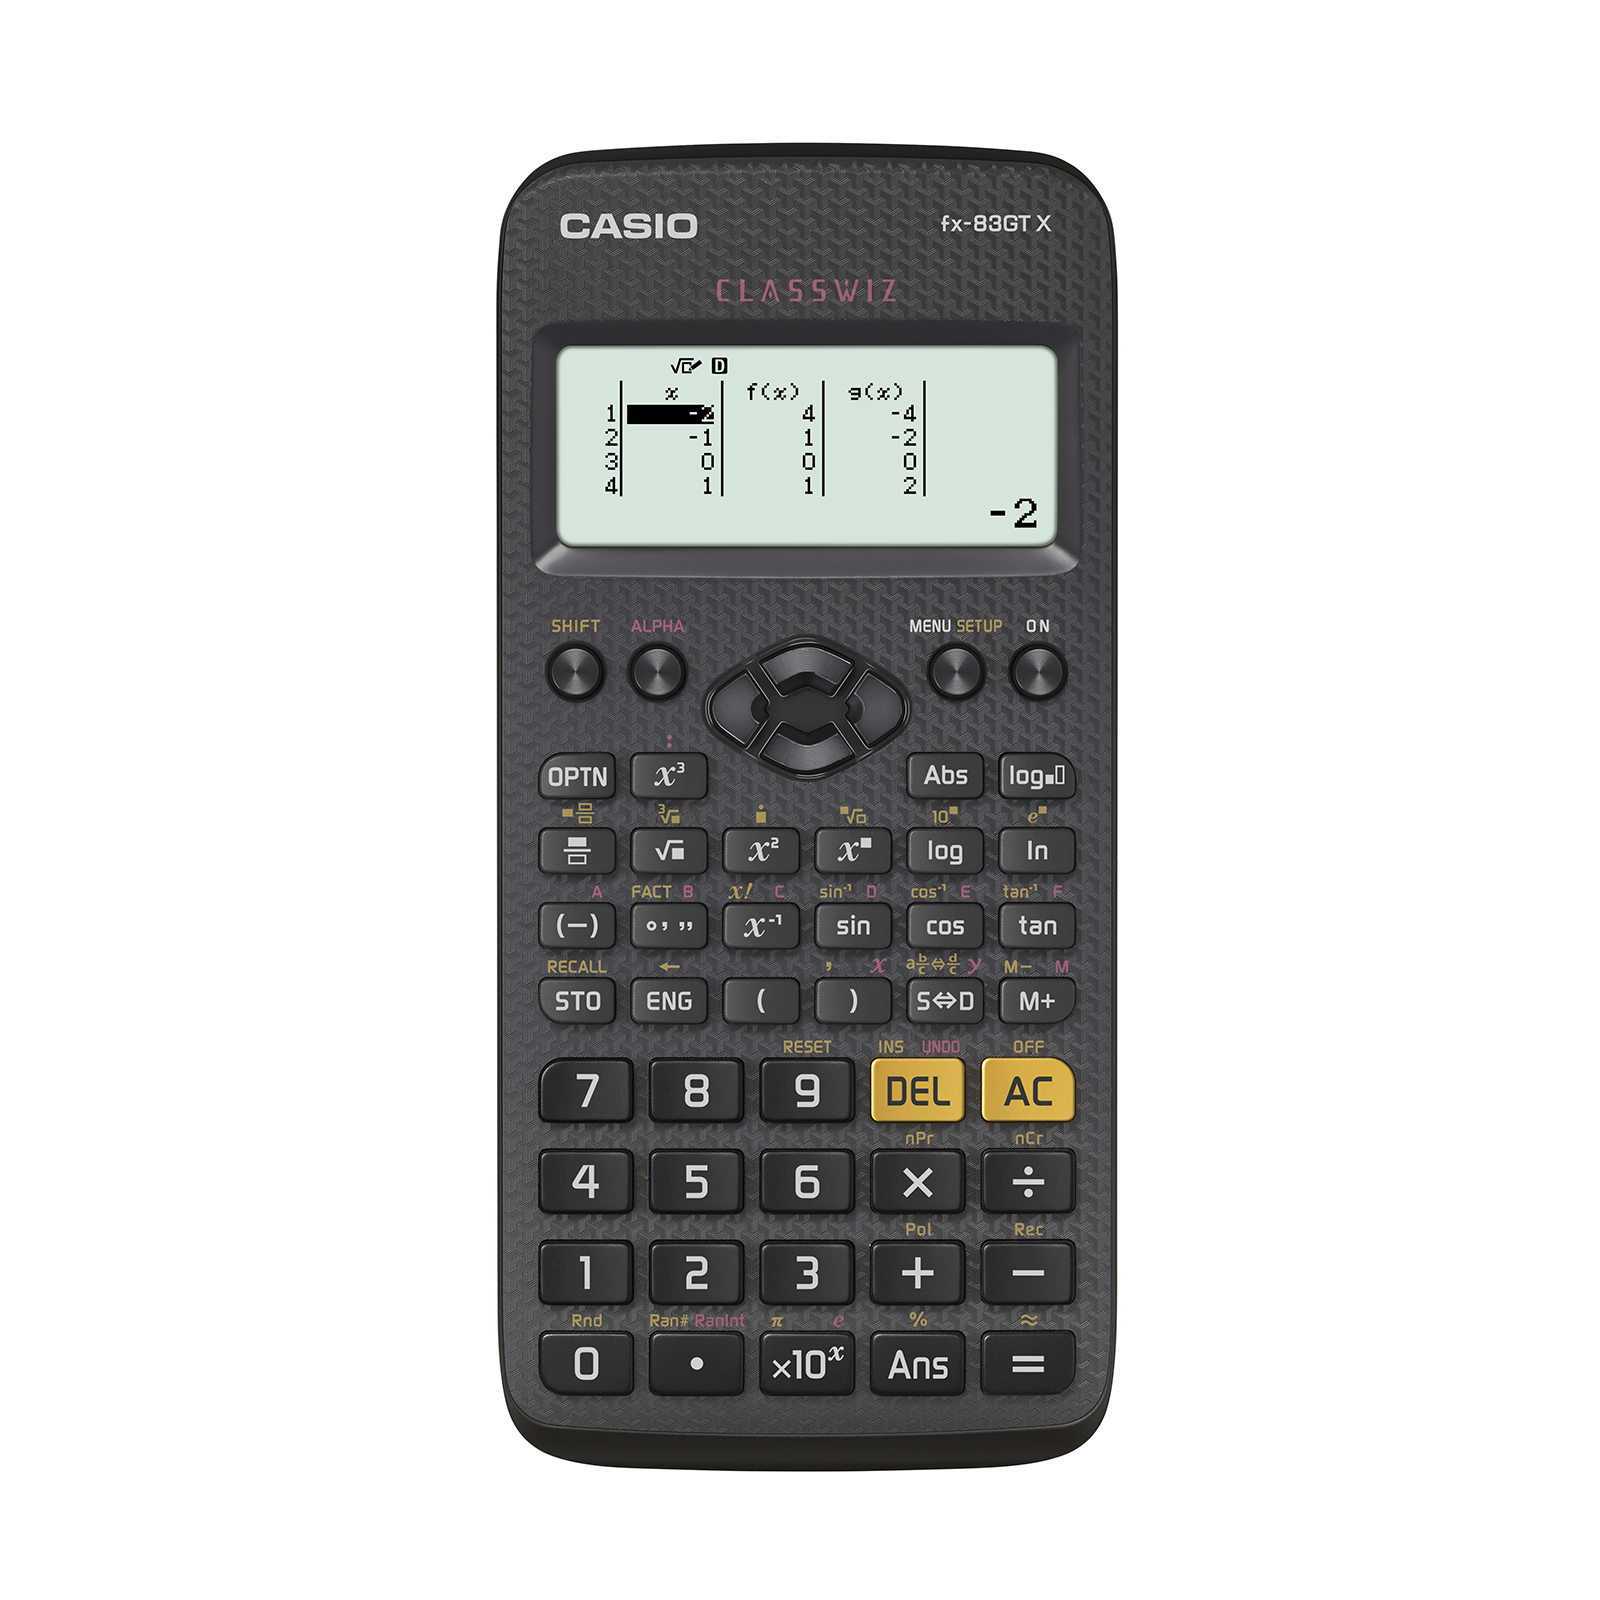 Scientific Calculator Casio FX-83GTX Scientific Calculator Exam Ready Black Ref FX-83GTX